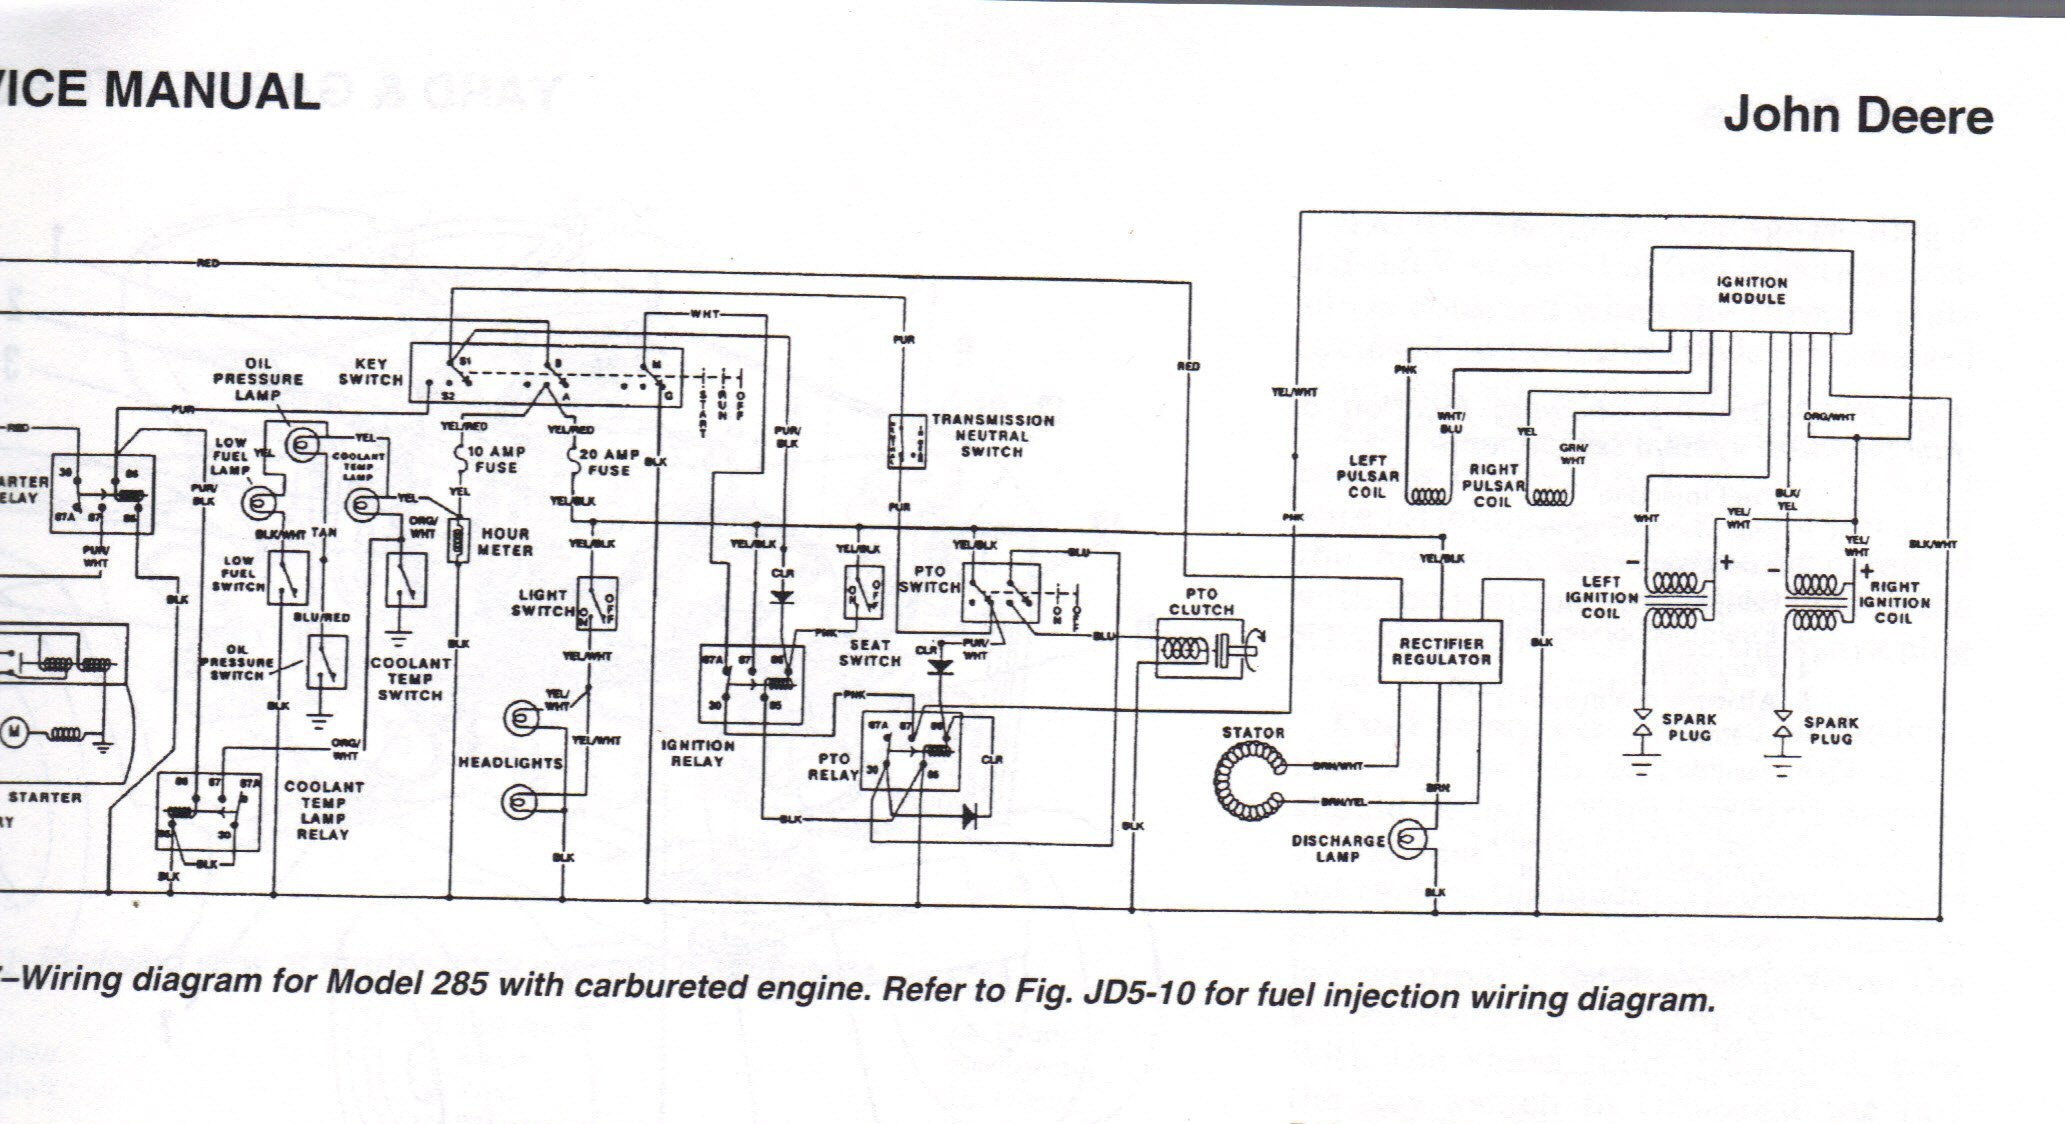 John Deere Wiring Diagrams Jd Stx 38 Wiring Diagram Wiring Diagram Of John Deere Wiring Diagrams